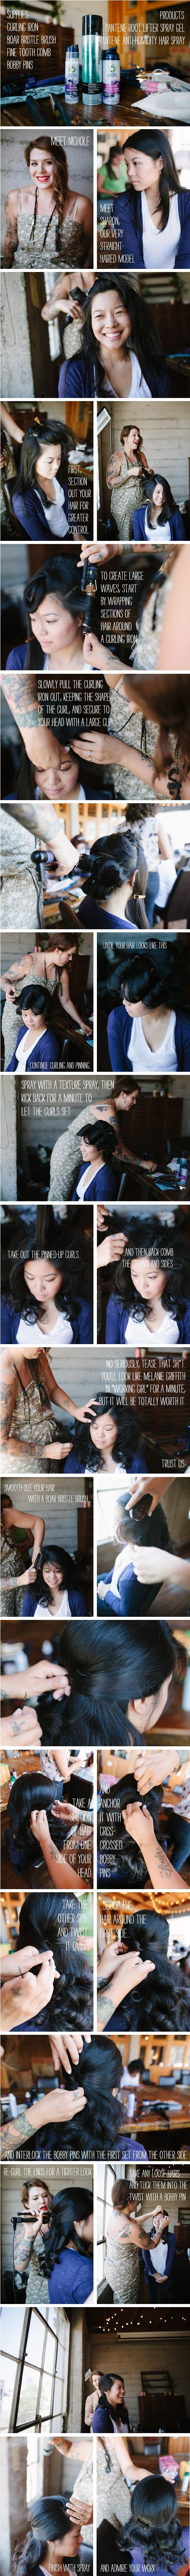 Simple Half-Up Half-Down Do  i'll need this for the weekend...  @Jillian Yoder - what do you think?